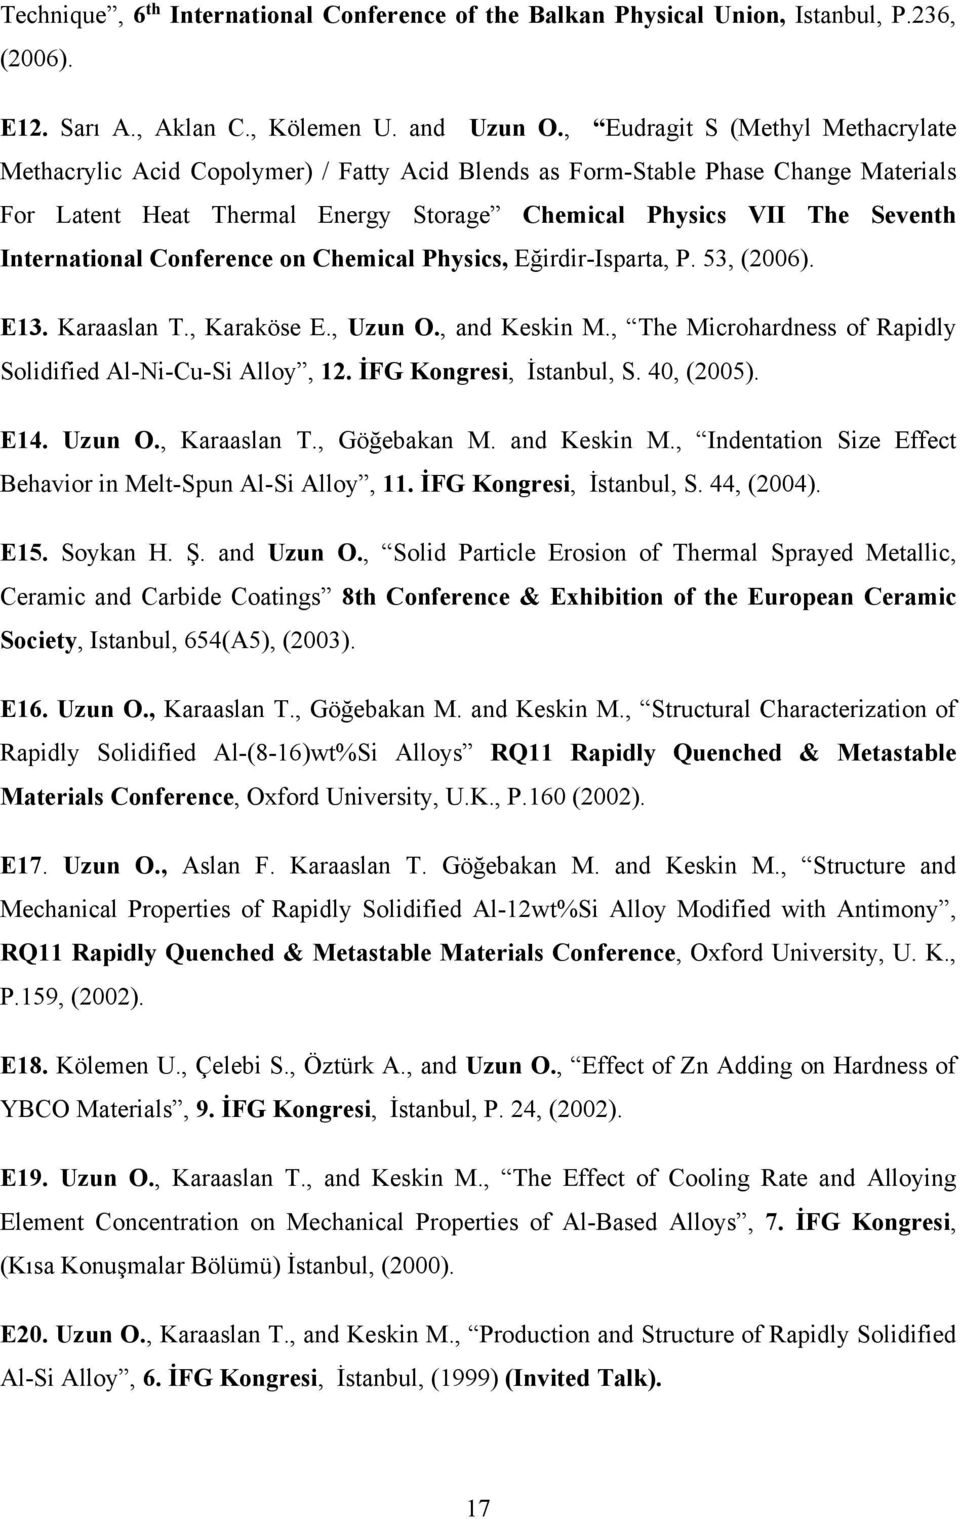 International Conference on Chemical Physics, Eğirdir-Isparta, P. 53, (2006). E13. Karaaslan T., Karaköse E., Uzun O., and Keskin M., The Microhardness of Rapidly Solidified Al-Ni-Cu-Si Alloy, 12.